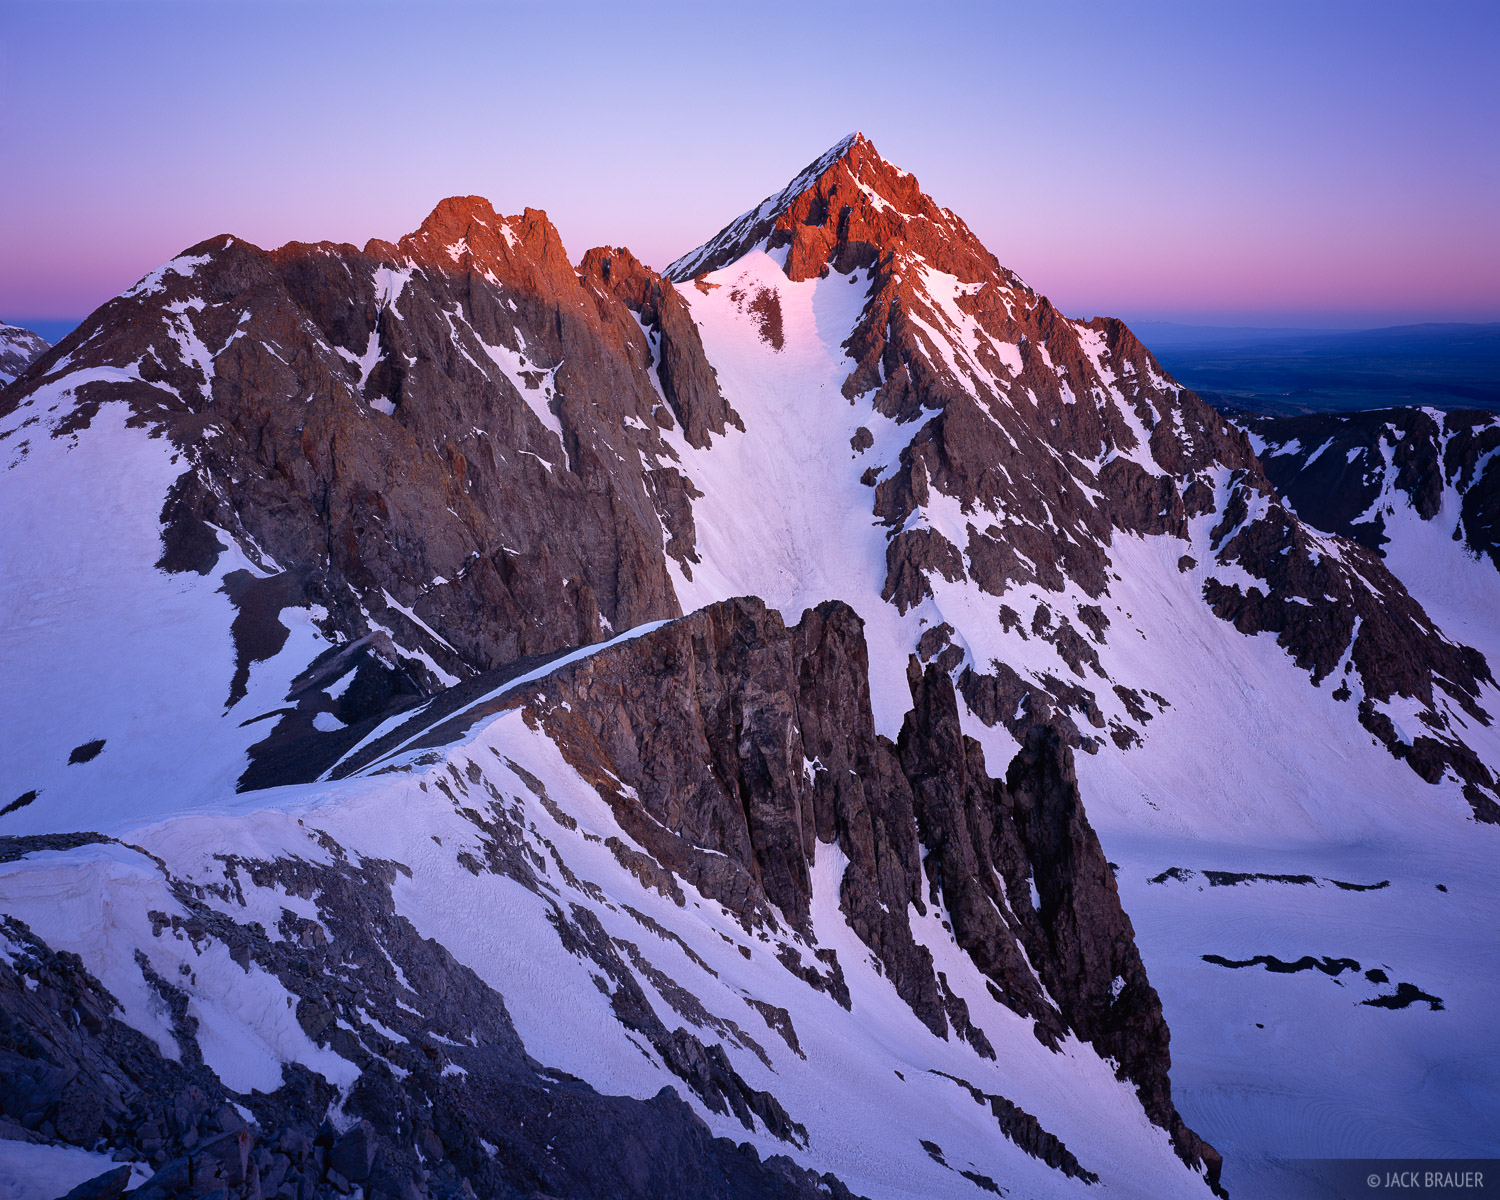 Alpenglow, Mt. Sneffels, San Juan Mountains, Colorado, photo